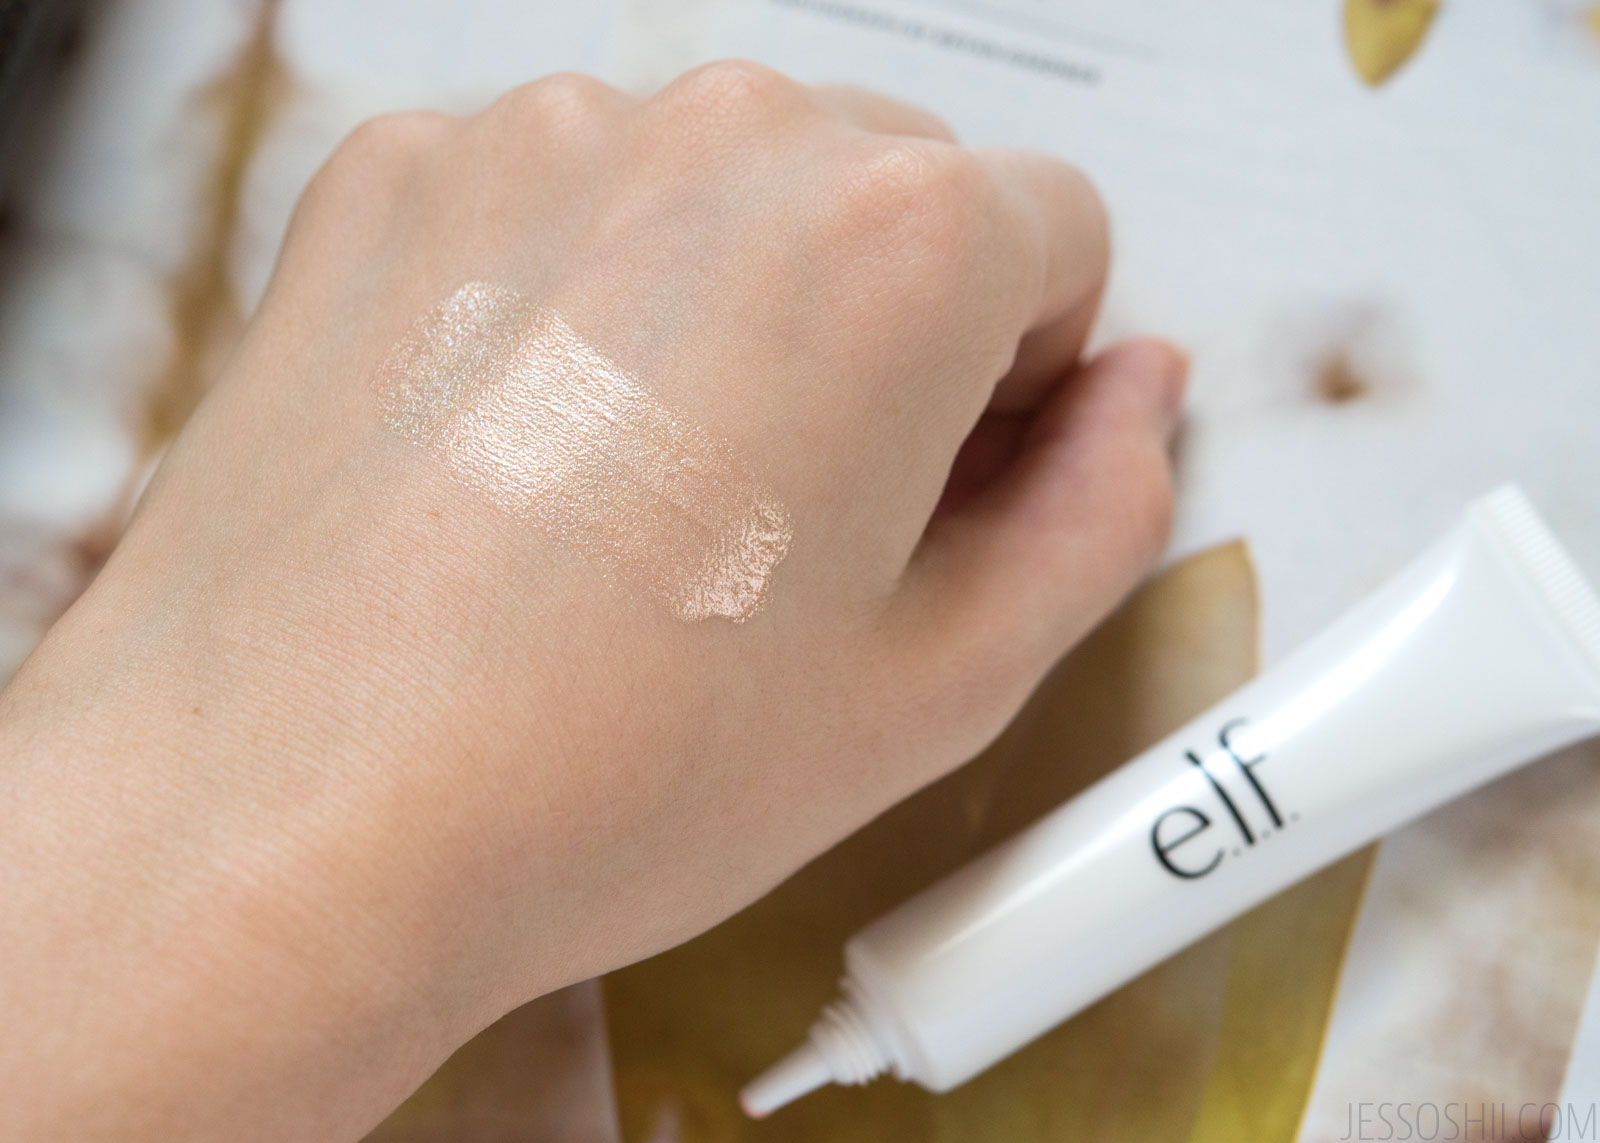 e.l.f. Highlighting Dewy Drops liquid highlighter swatch